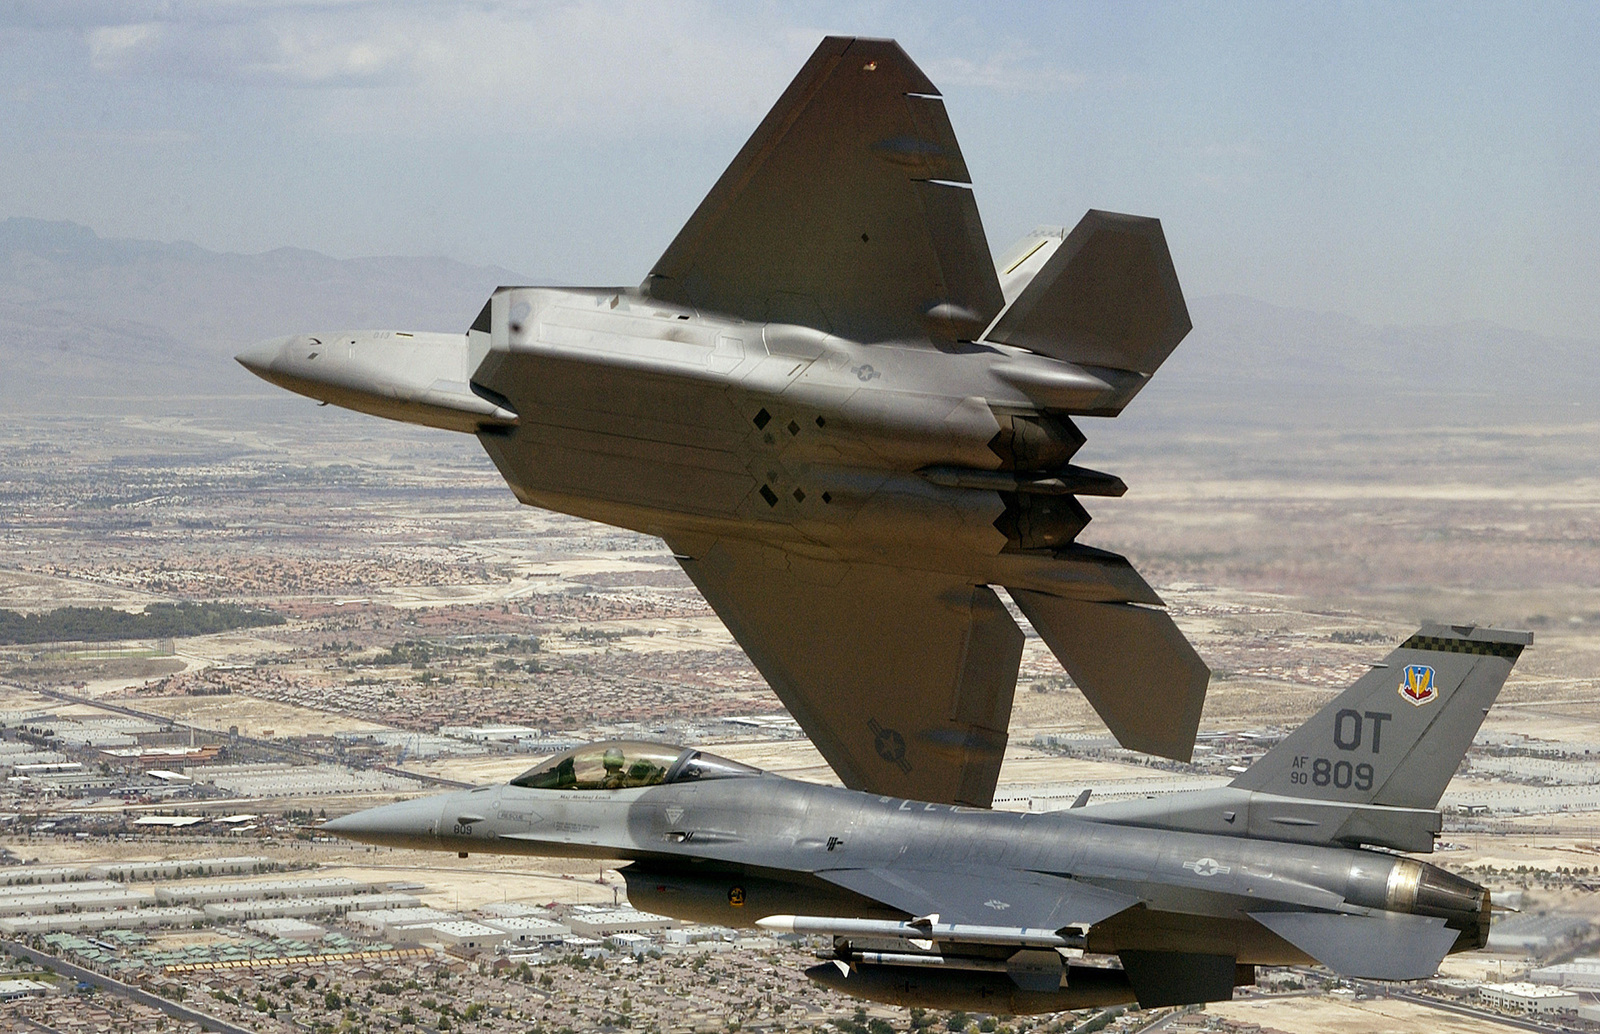 A US Air Force (USAF) F/A-22 Raptor flown by USAF Major (MAJ) David Thole, 422nd Test and Evaluation Squadron (TES), Nellis Air Force Base (AFB), Nevada (NV), breaks away after completing a training mission with a USAF F-16 Fighting Falcon, flown by USAF MAJ Alex Grynkewich, 53rd Test and Evaluation Group (TEG), Nellis AFB, NV